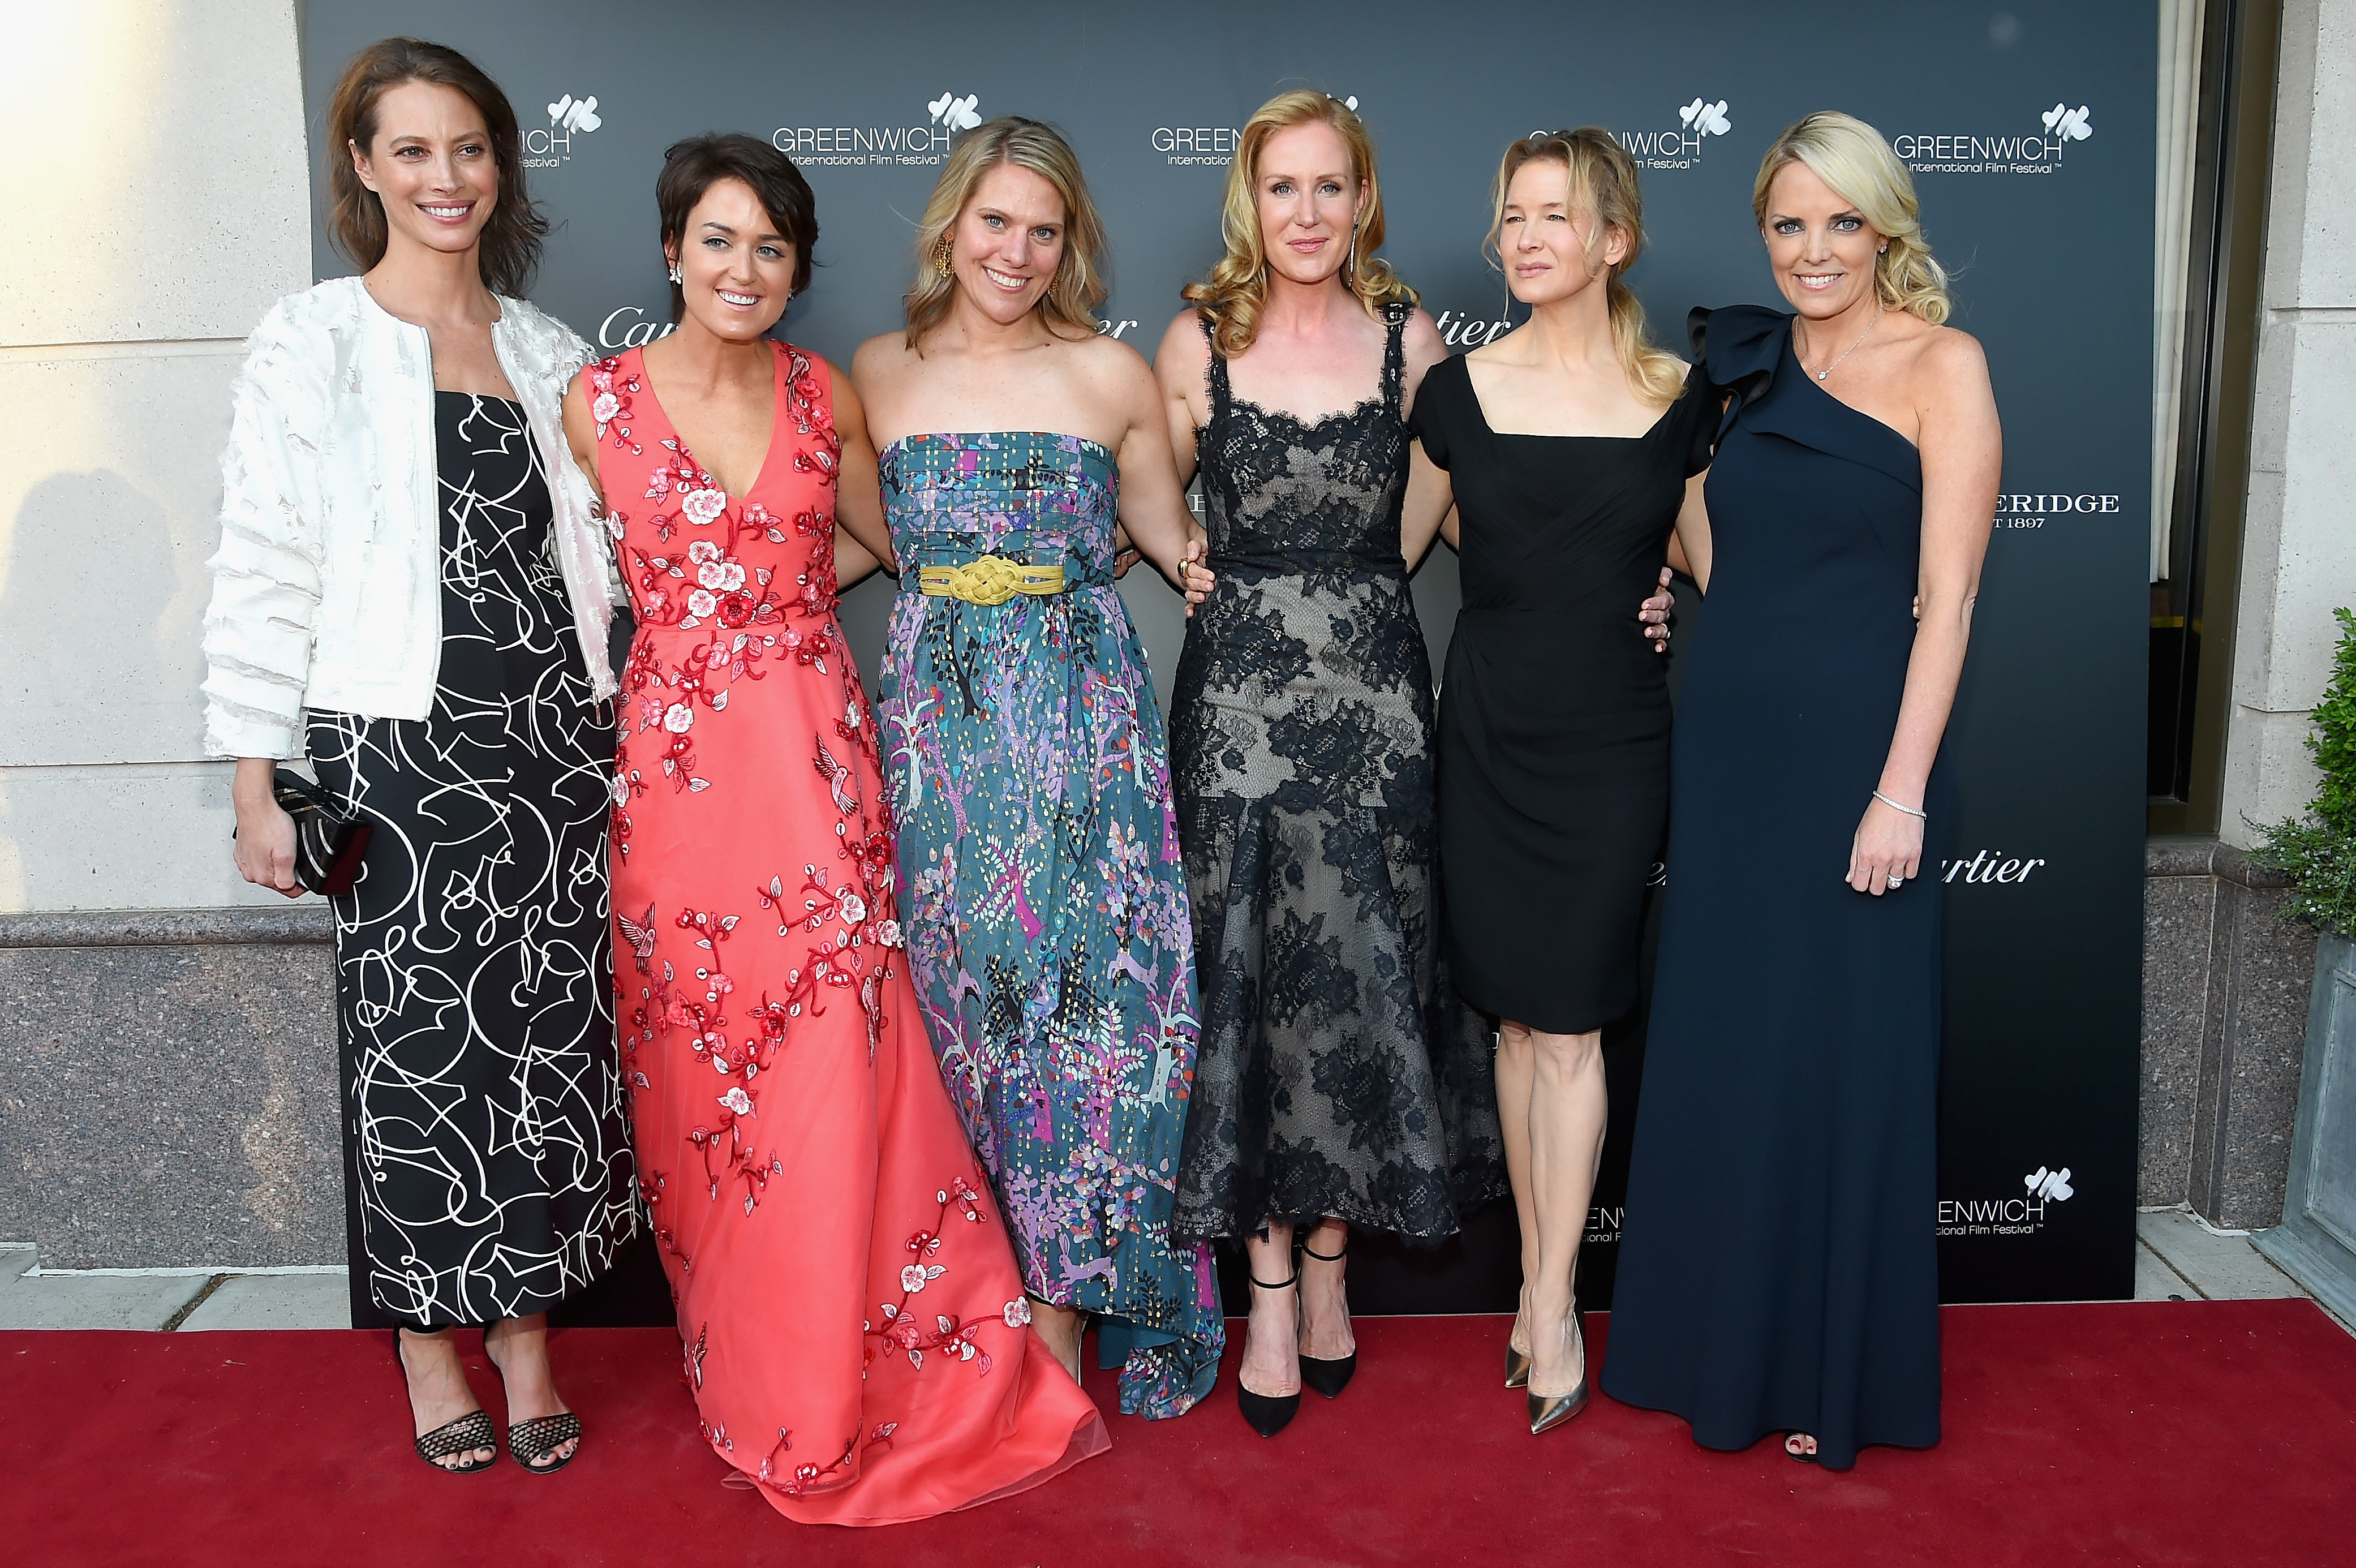 GREENWICH, CT - JUNE 01:  (L-R)  Christy Turlington, Wendy Reyes, Eliza Niblock McCrory, Colleen deVeer, Renee Zellweger and Ginger Stickel attend the Betteridge Cartier Cocktail Reception during the Greenwich International Film Festival, Day 1 on June 1, 2017 in Greenwich, Connecticut.  (Photo by Ben Gabbe/Getty Images for Greenwich International Film Festival)